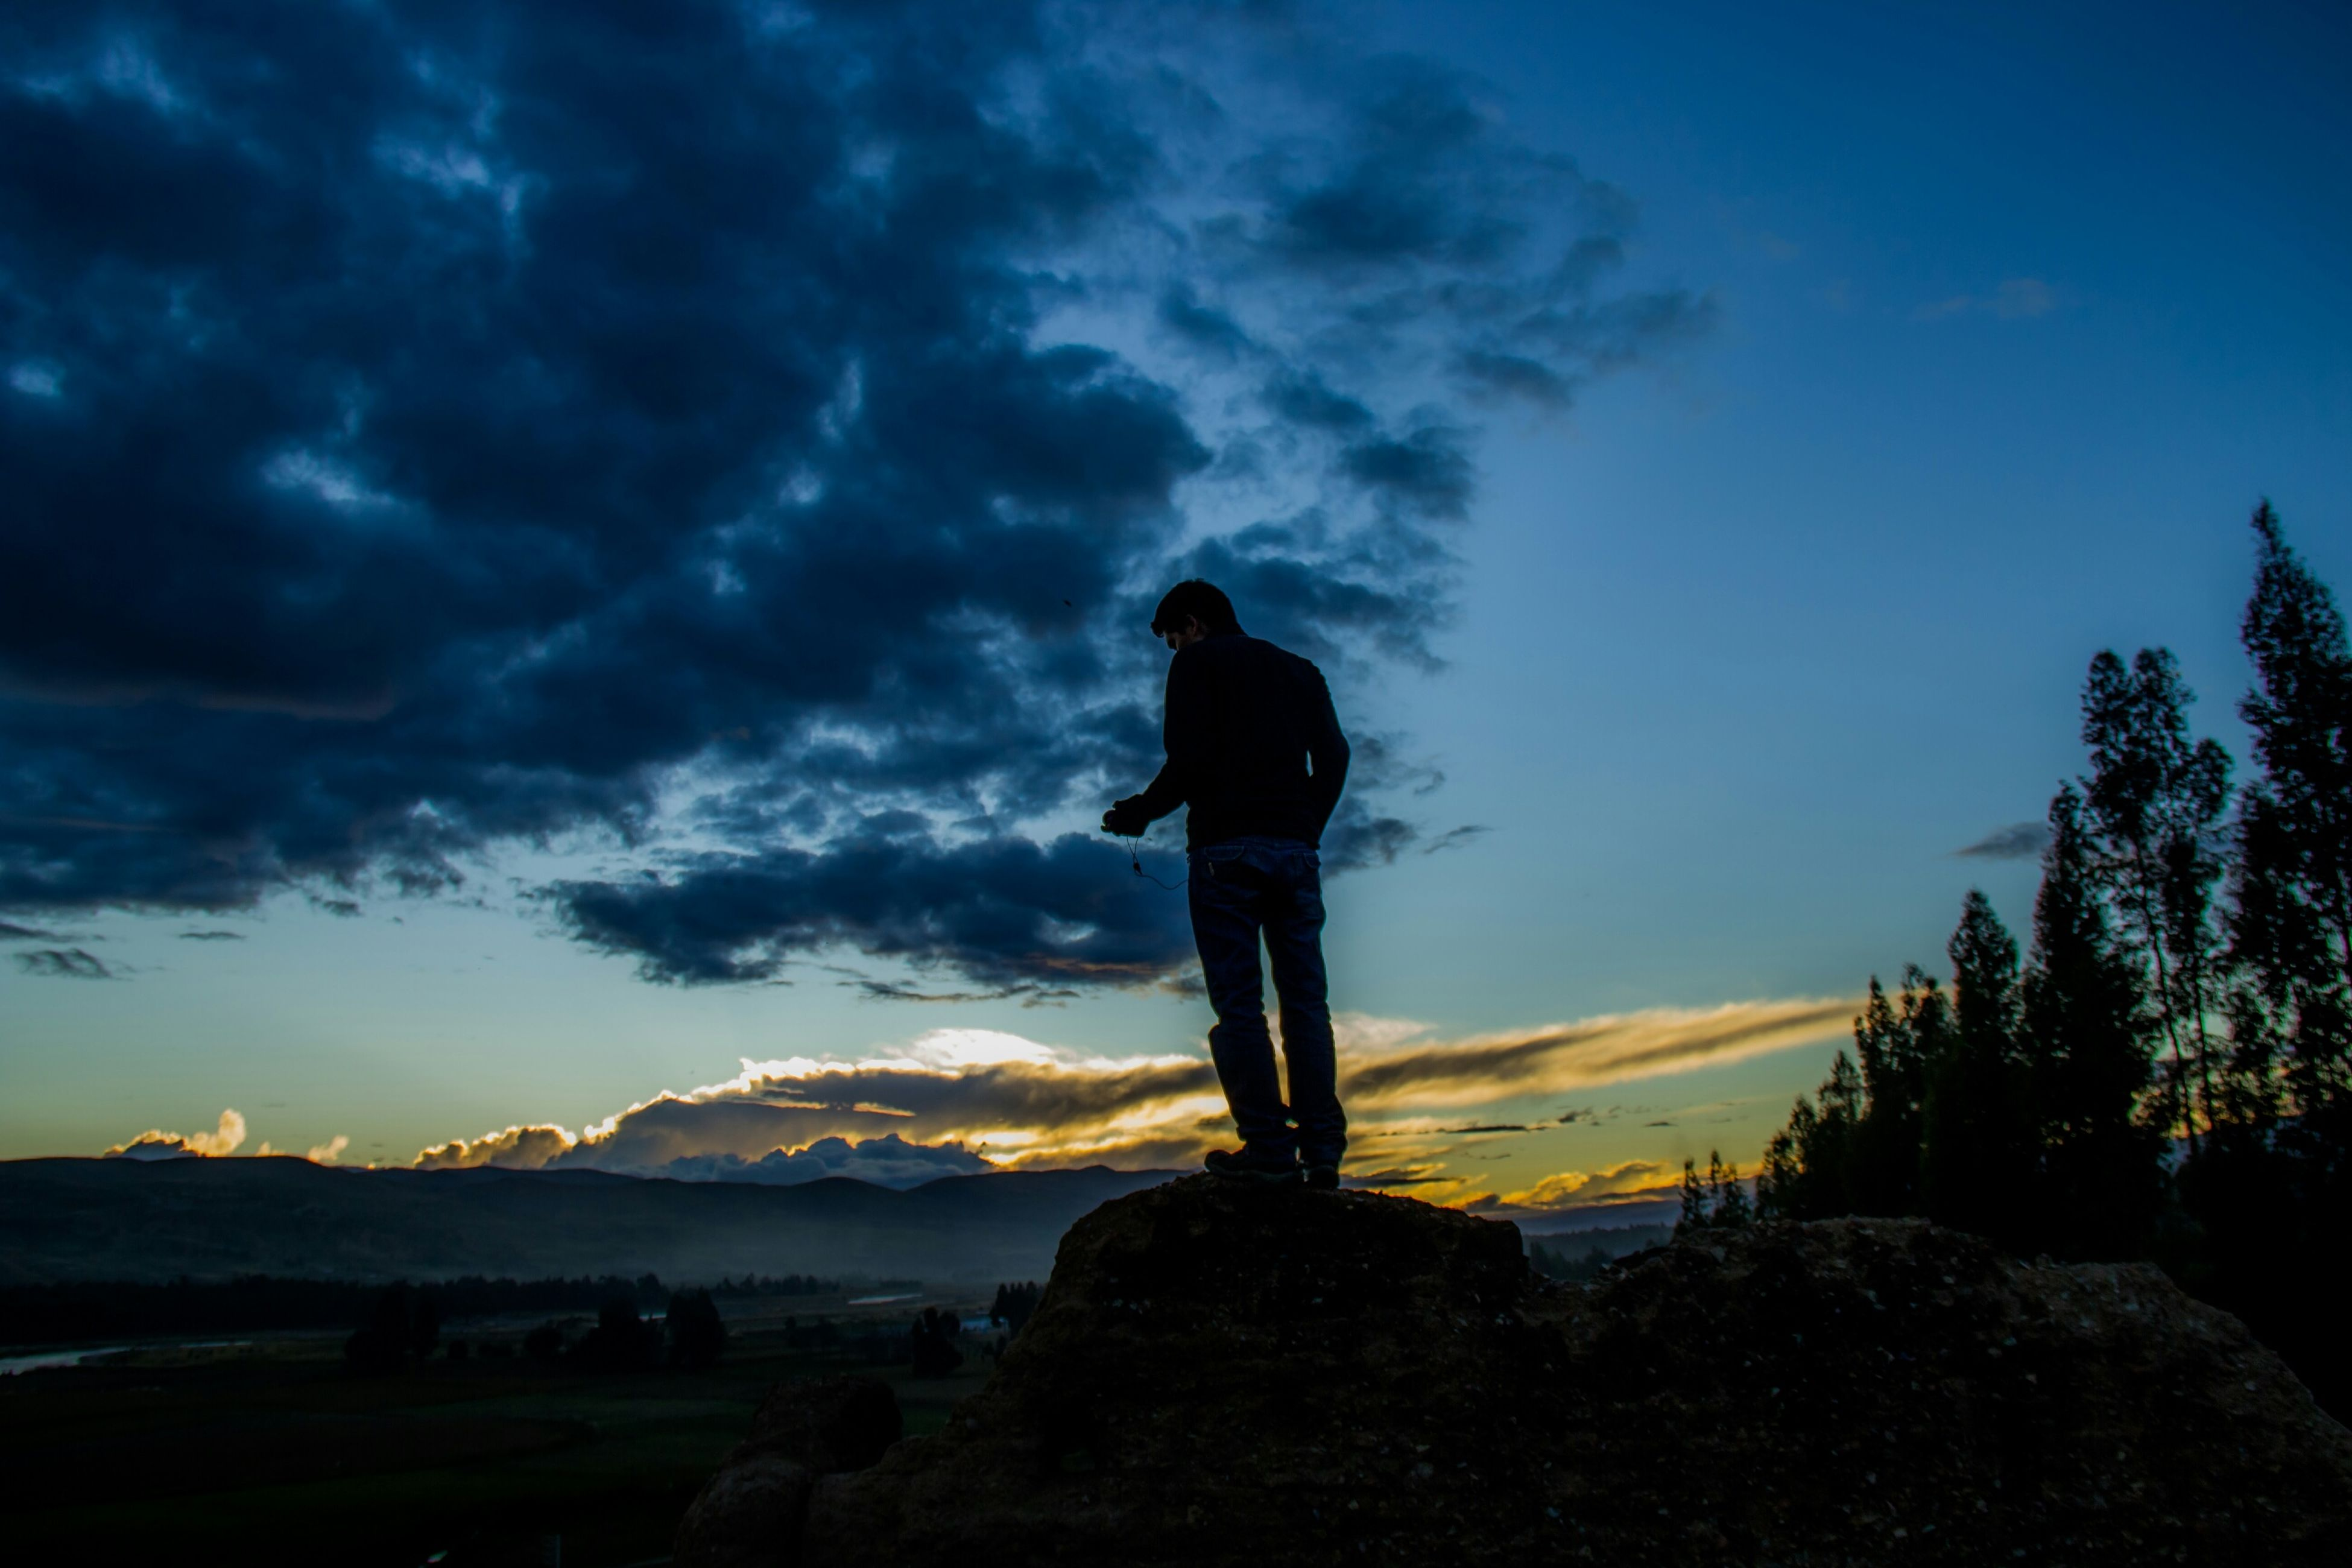 silhouette, sky, full length, standing, cloud - sky, lifestyles, leisure activity, sunset, tranquility, tranquil scene, rear view, scenics, cloud, nature, beauty in nature, cloudy, water, dusk